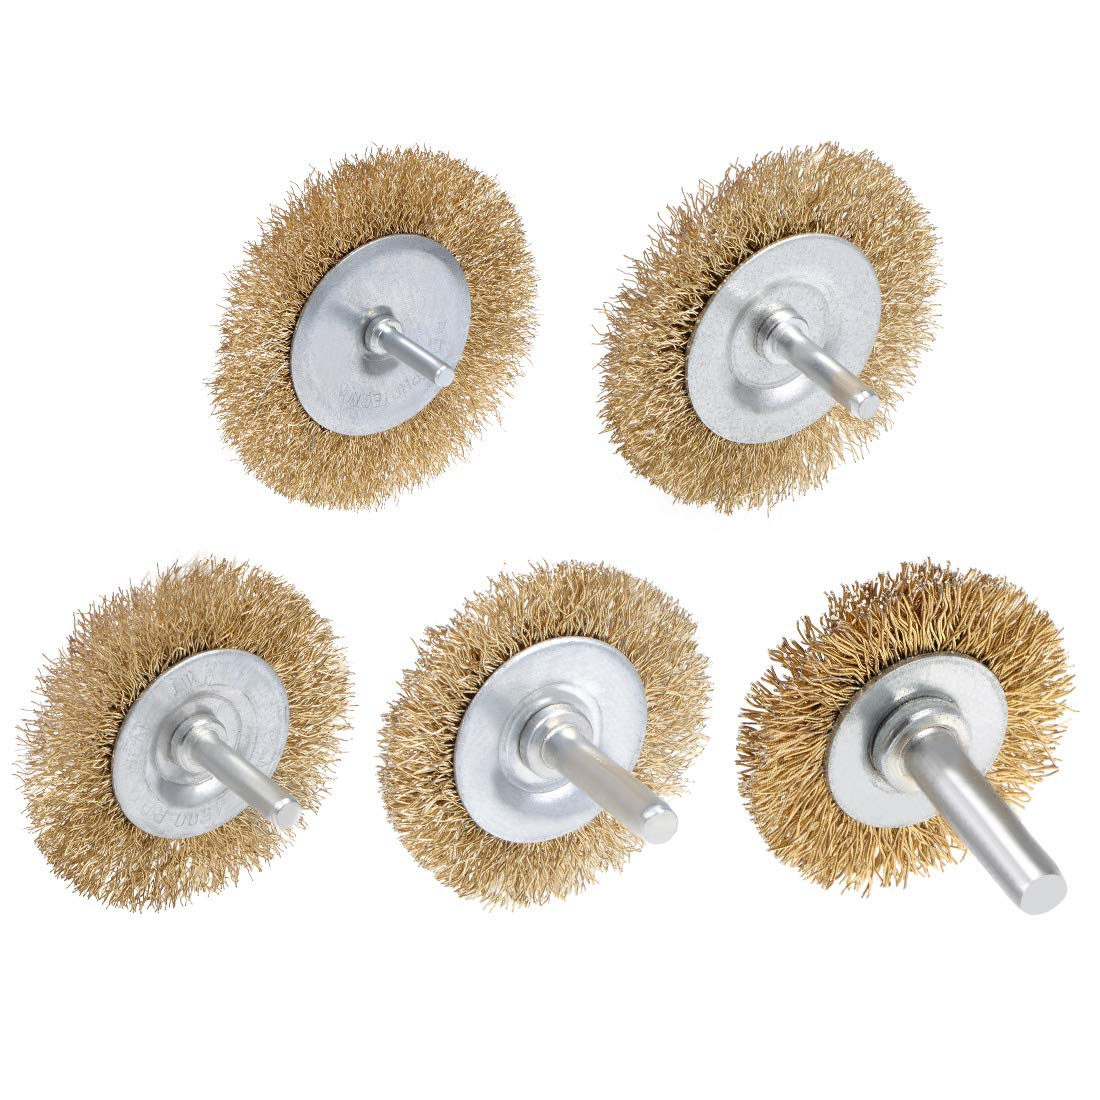 uxcell Wire Wheel Brush with Shank Bench Copper Plated Crimped Steel 1-1//2Inch Wheel 0.012-inch Wire Dia 3 Pcs